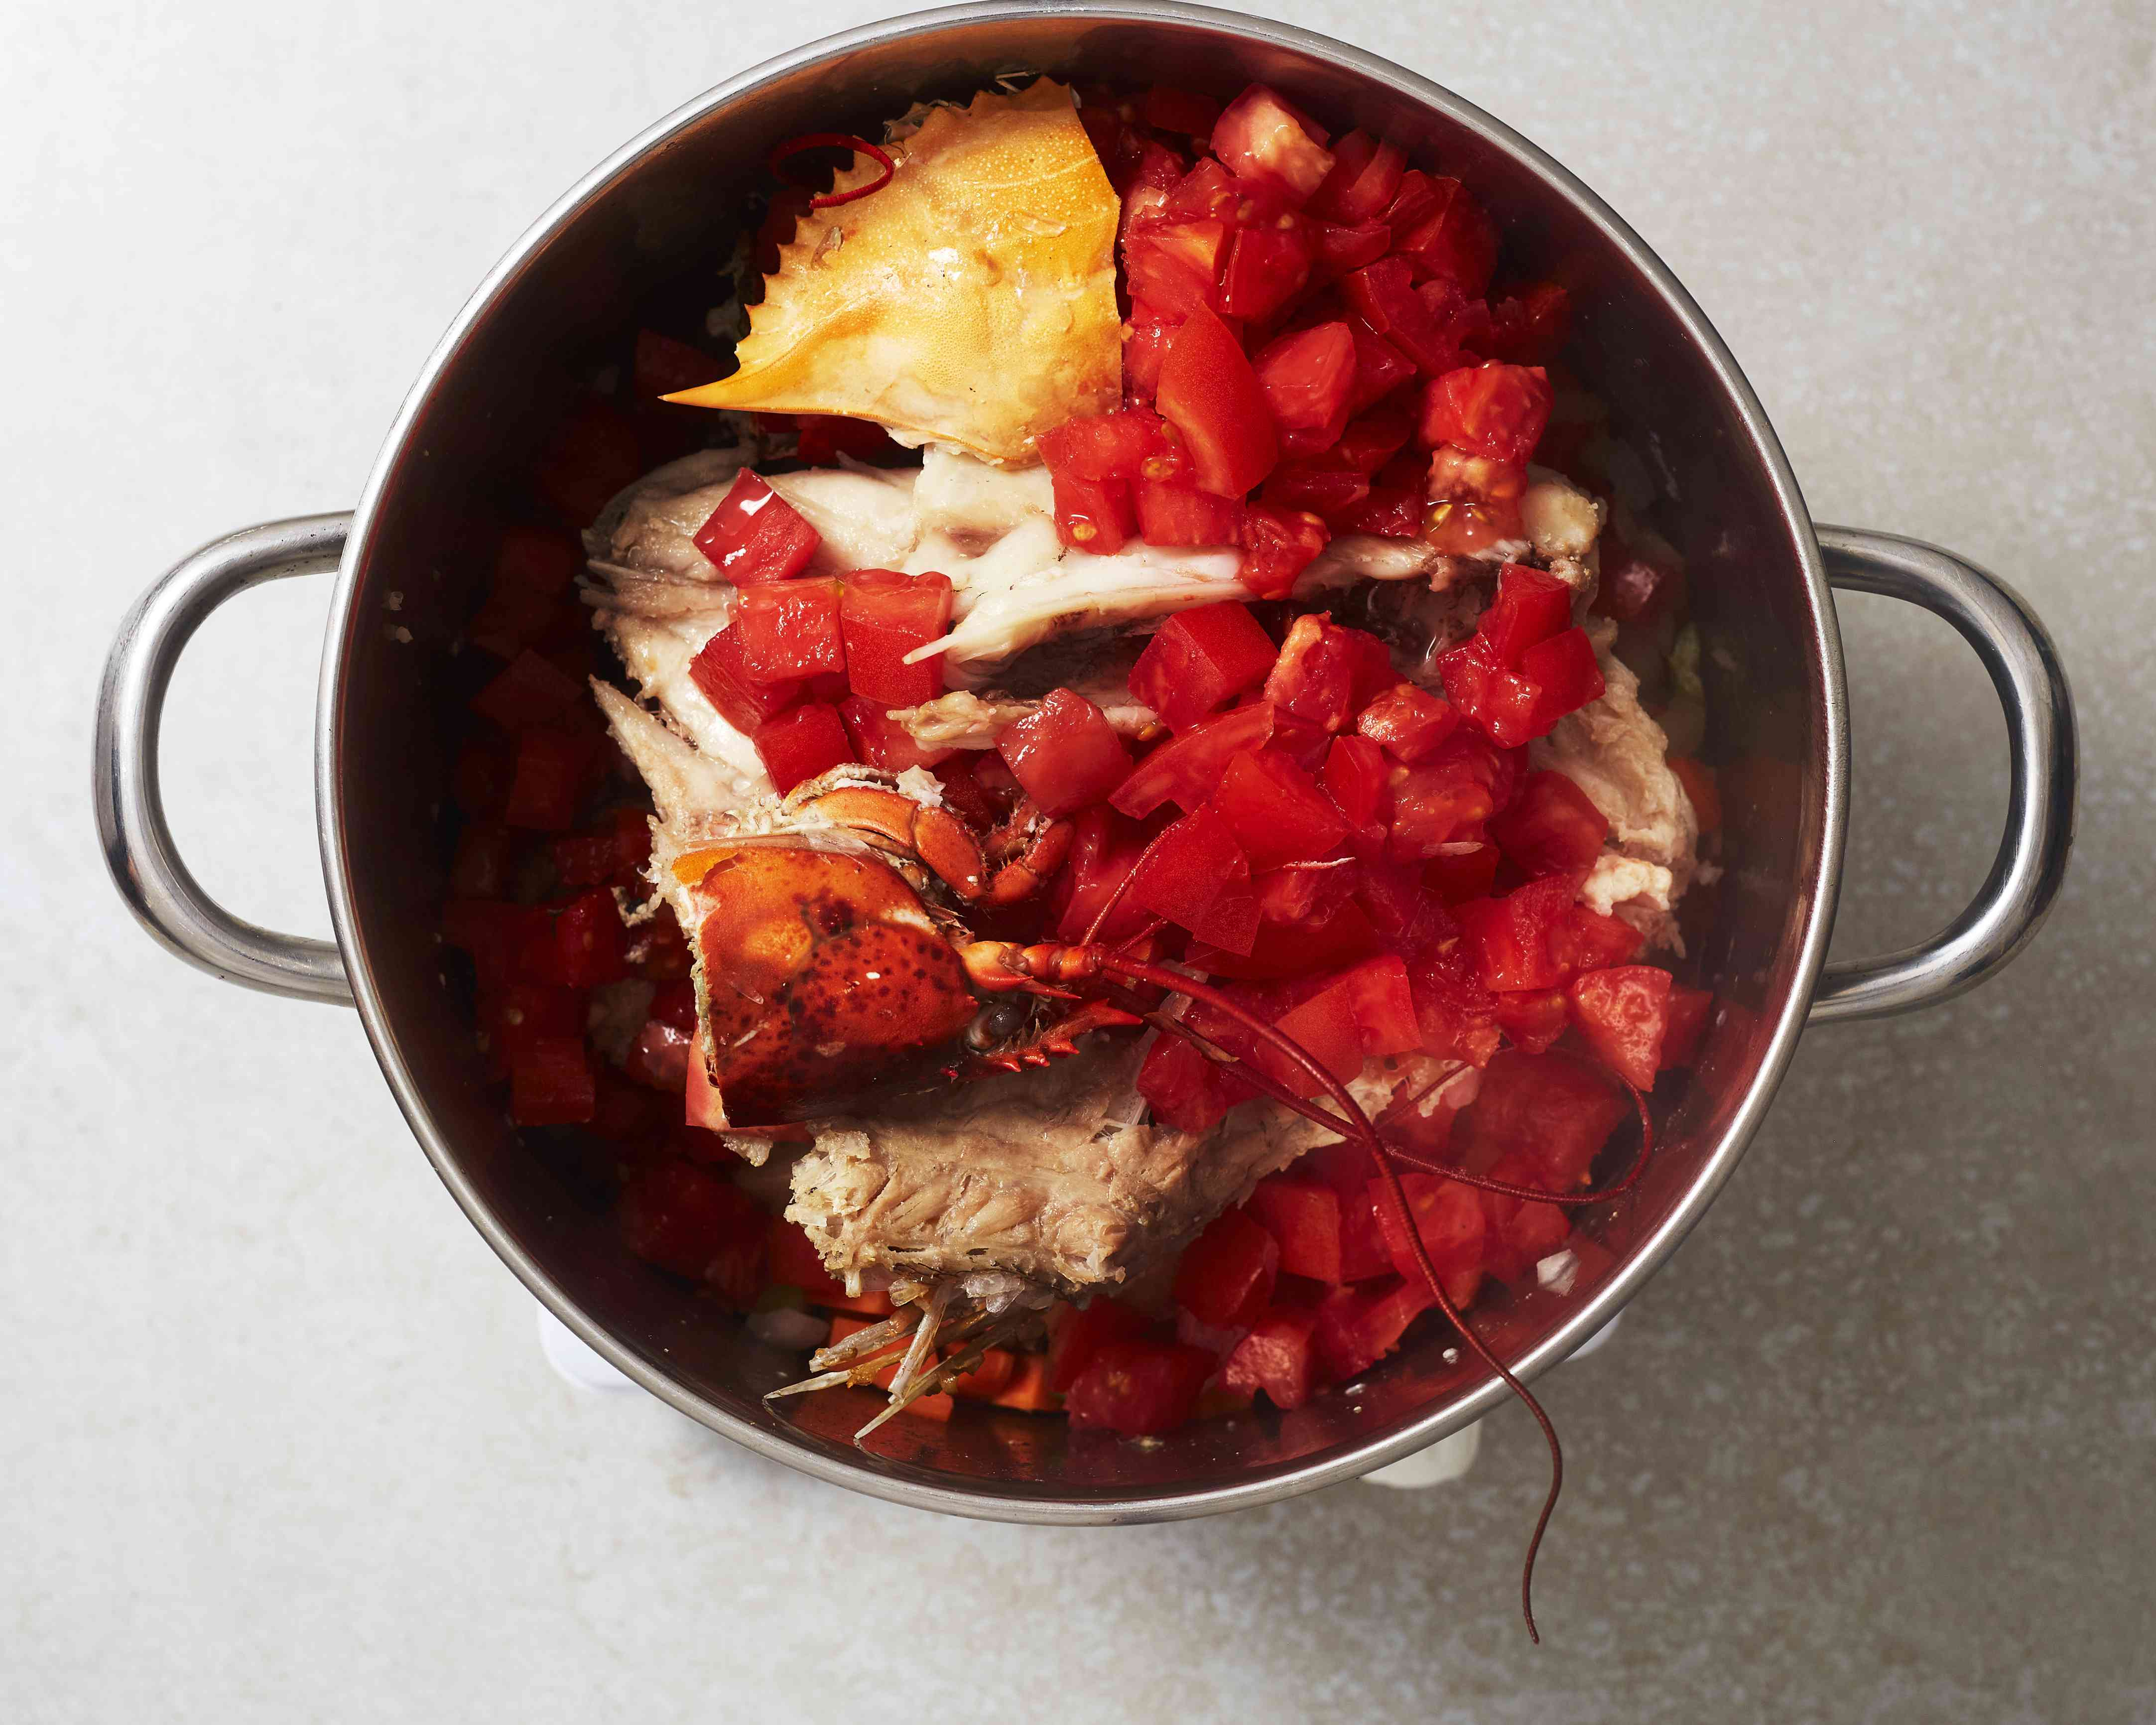 Add the tomatoes to the fish mixture and cook until soft